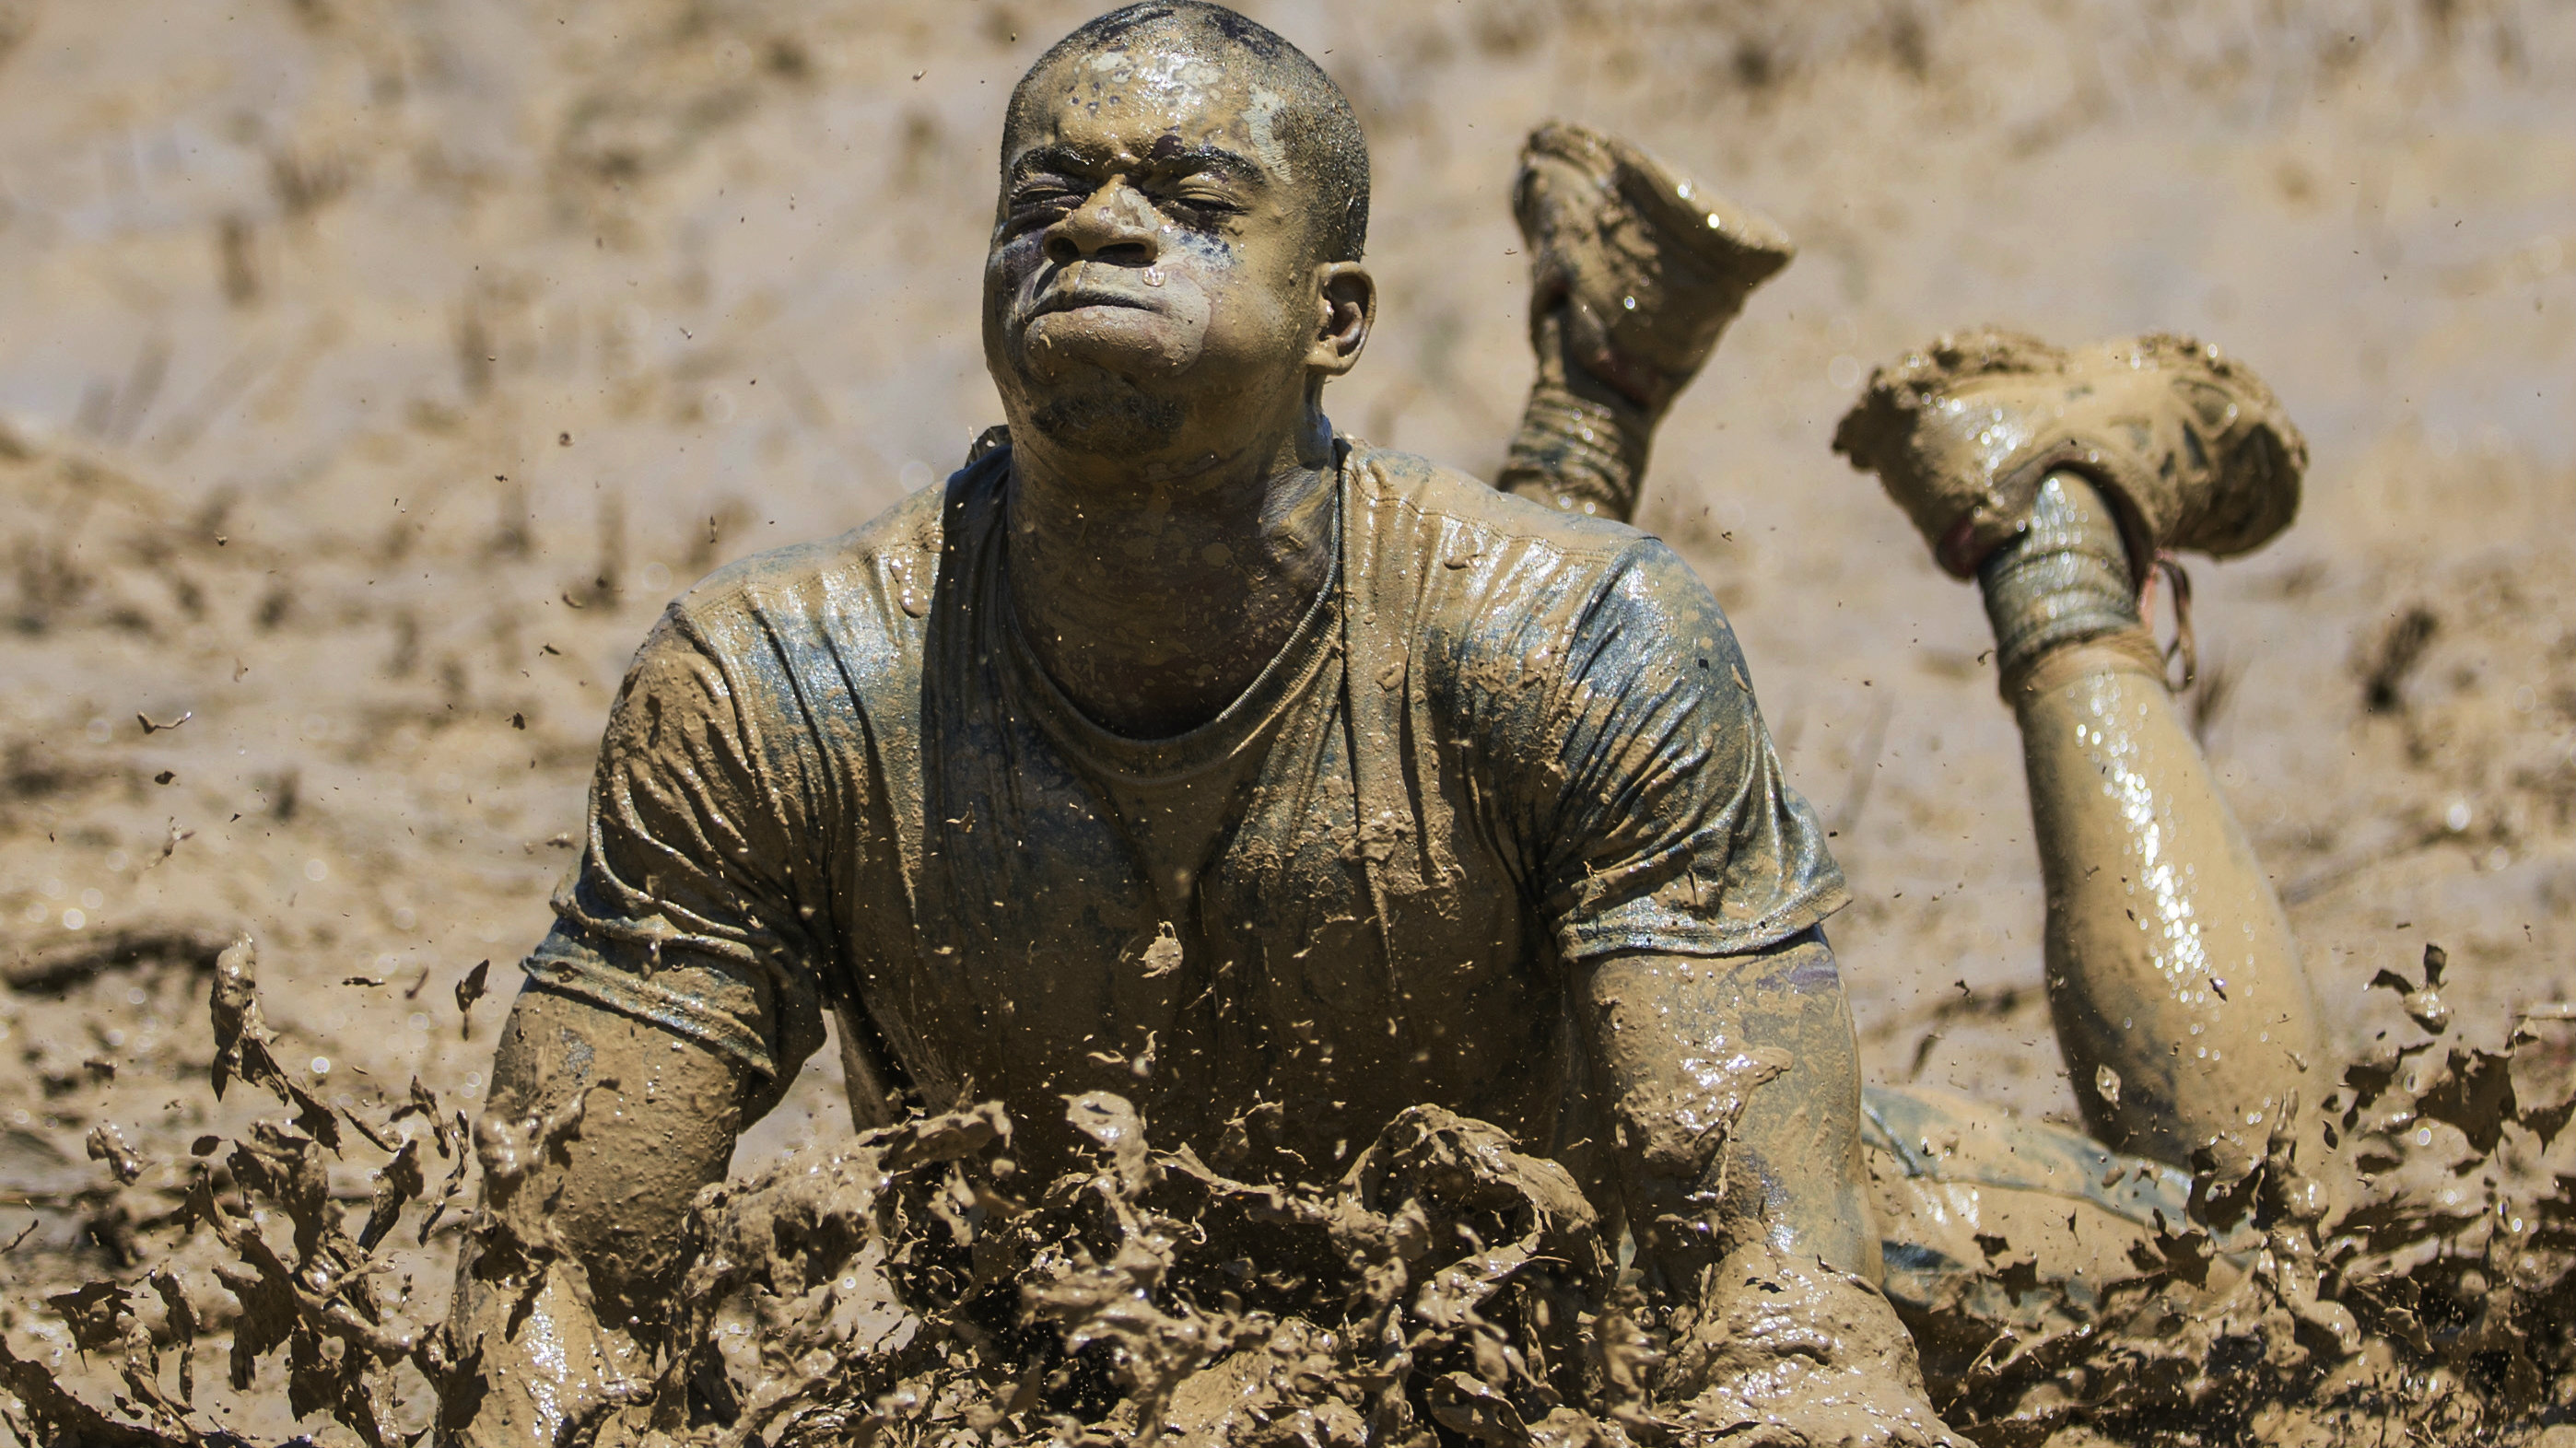 Man completing the Tough Mudder obstacle course.